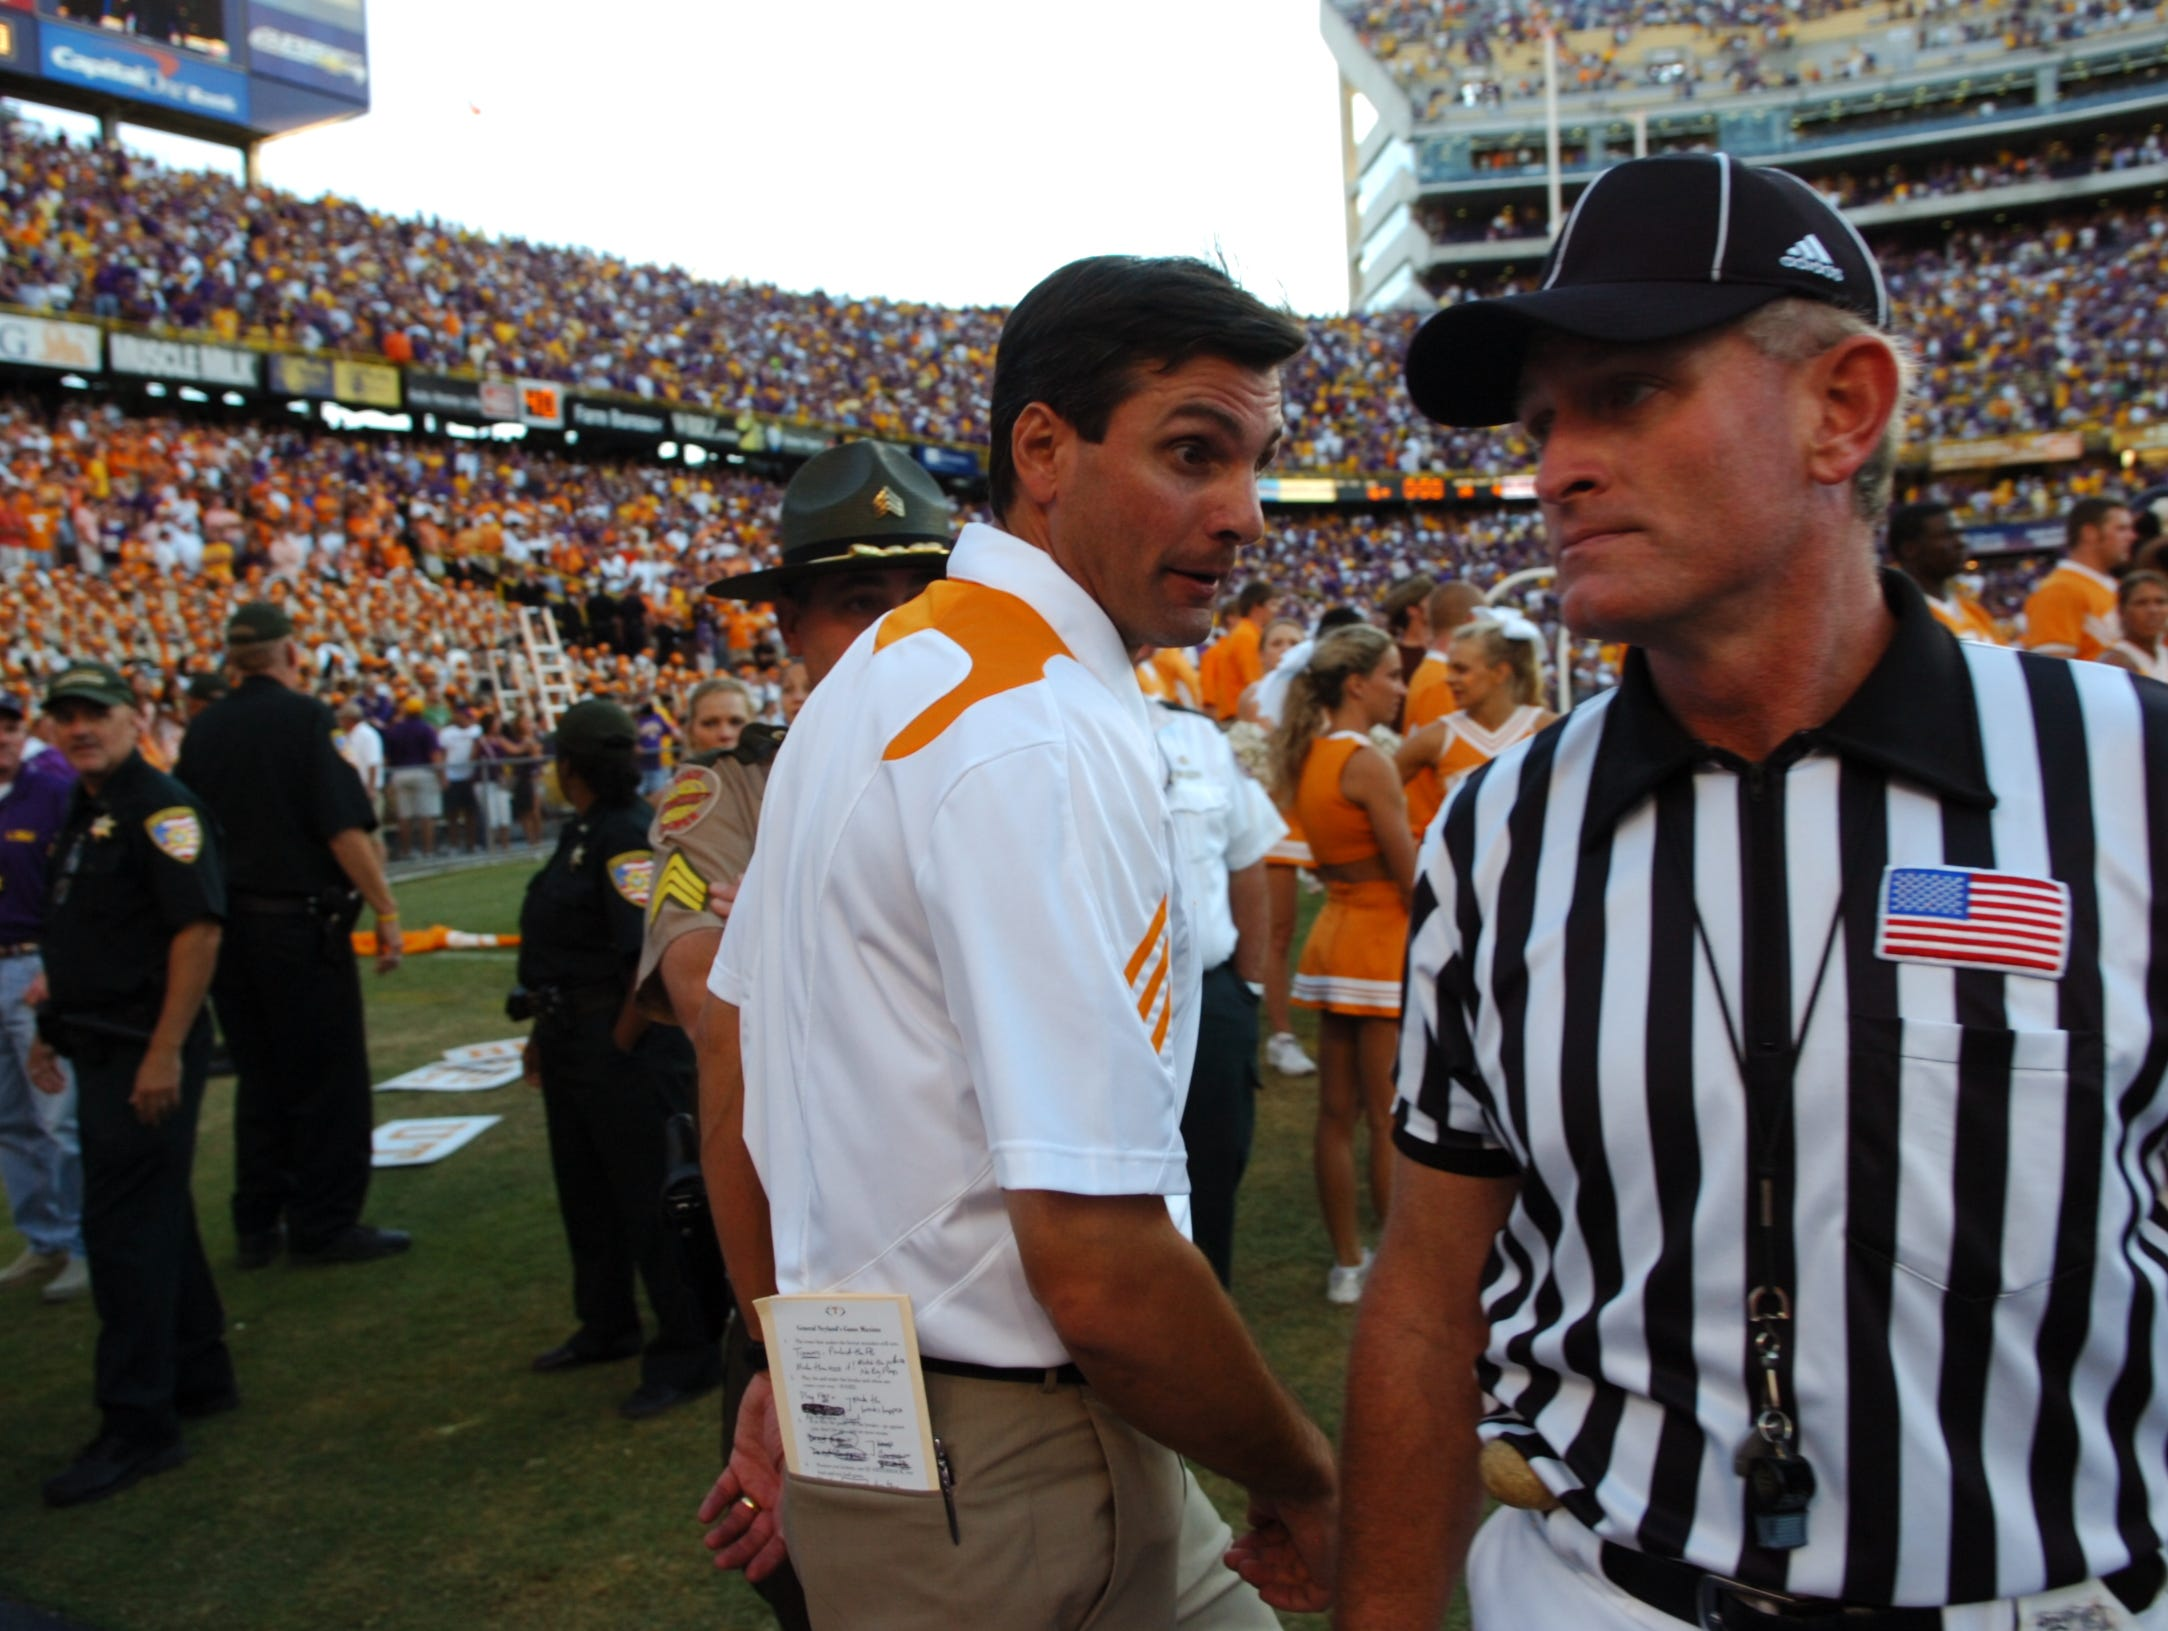 Tennesse head coach Derek Dooley reacts to referees as he is called back on to the field against LSU at Tiger Stadium in Baton Rouge, La. on Saturday, Oct. 2, 2010. UT lost the game 16-14 after a defensive penalty in the final play of the game.